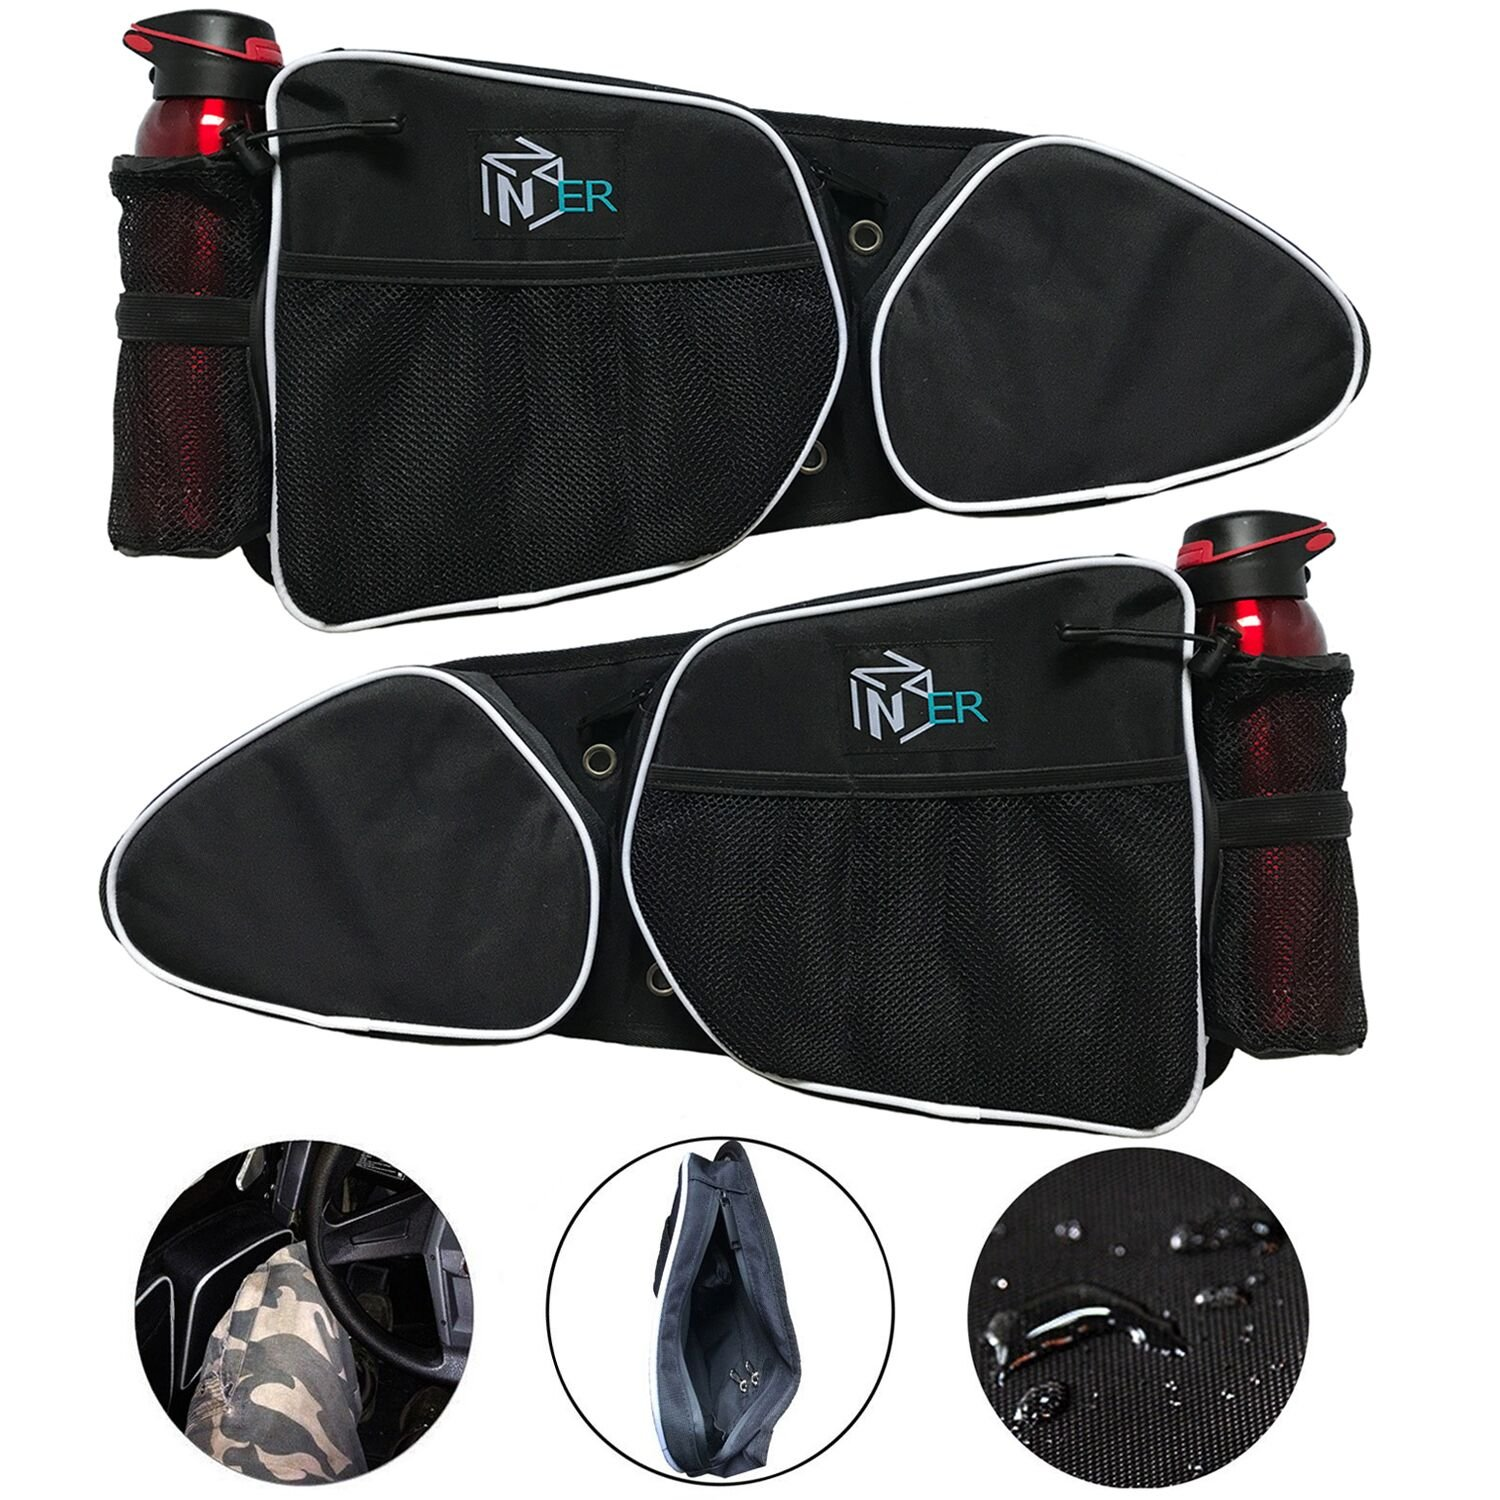 Zinger RZR Door Bags for 2014-2017 Polaris XP/RZR XP4 1000/RZR Turbo/Turbo 4 and 2015-2017 RZR S 900 Front Doors,with One Passenger Side Door Bag + One Driver Side Storage Bag, with Knee Protection